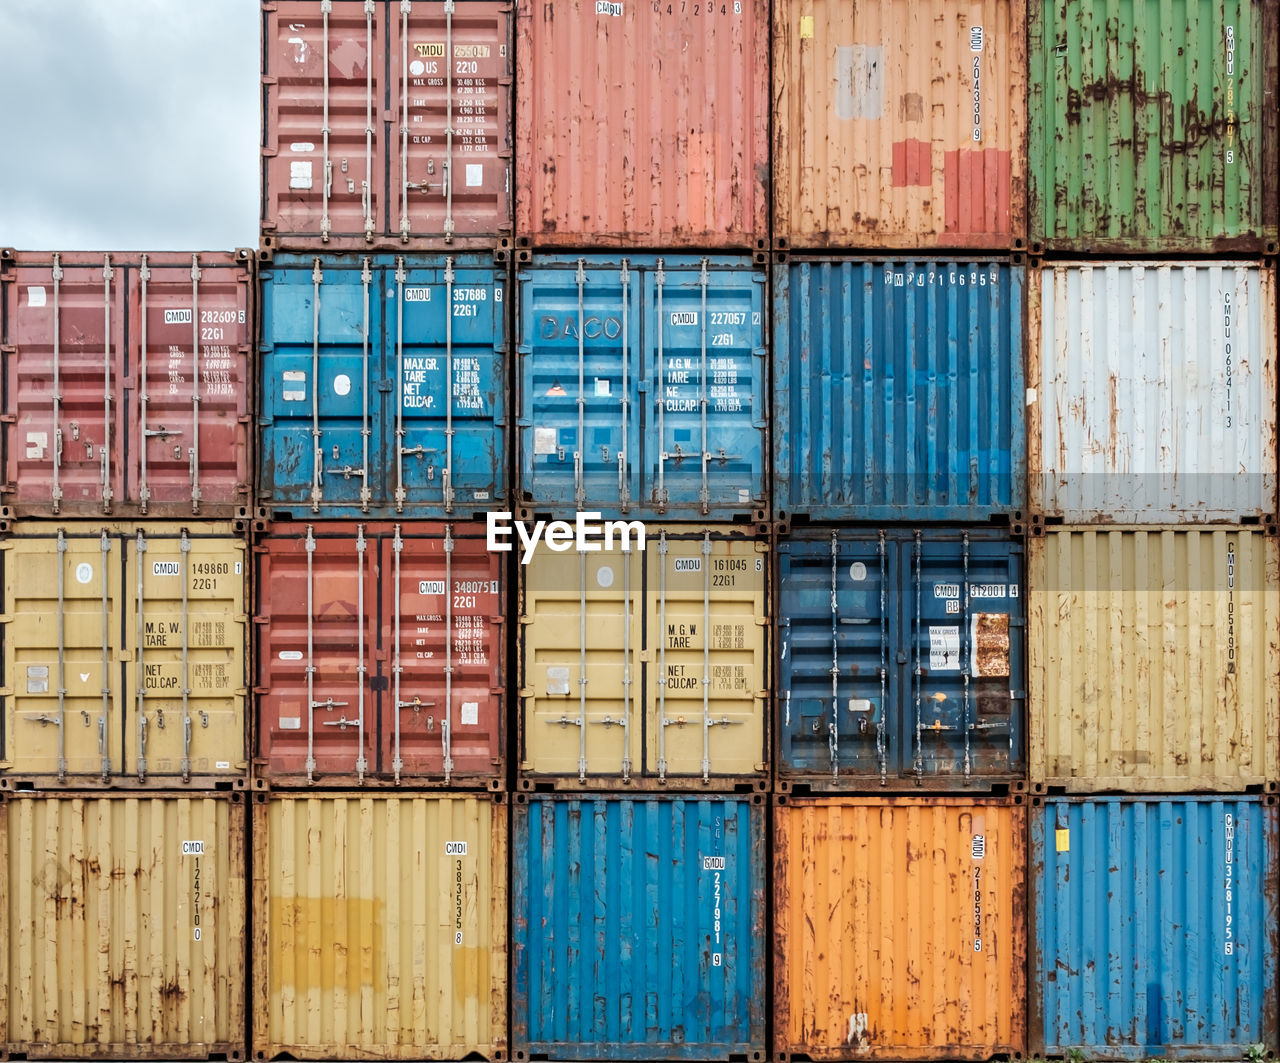 Stack of containers on a dock